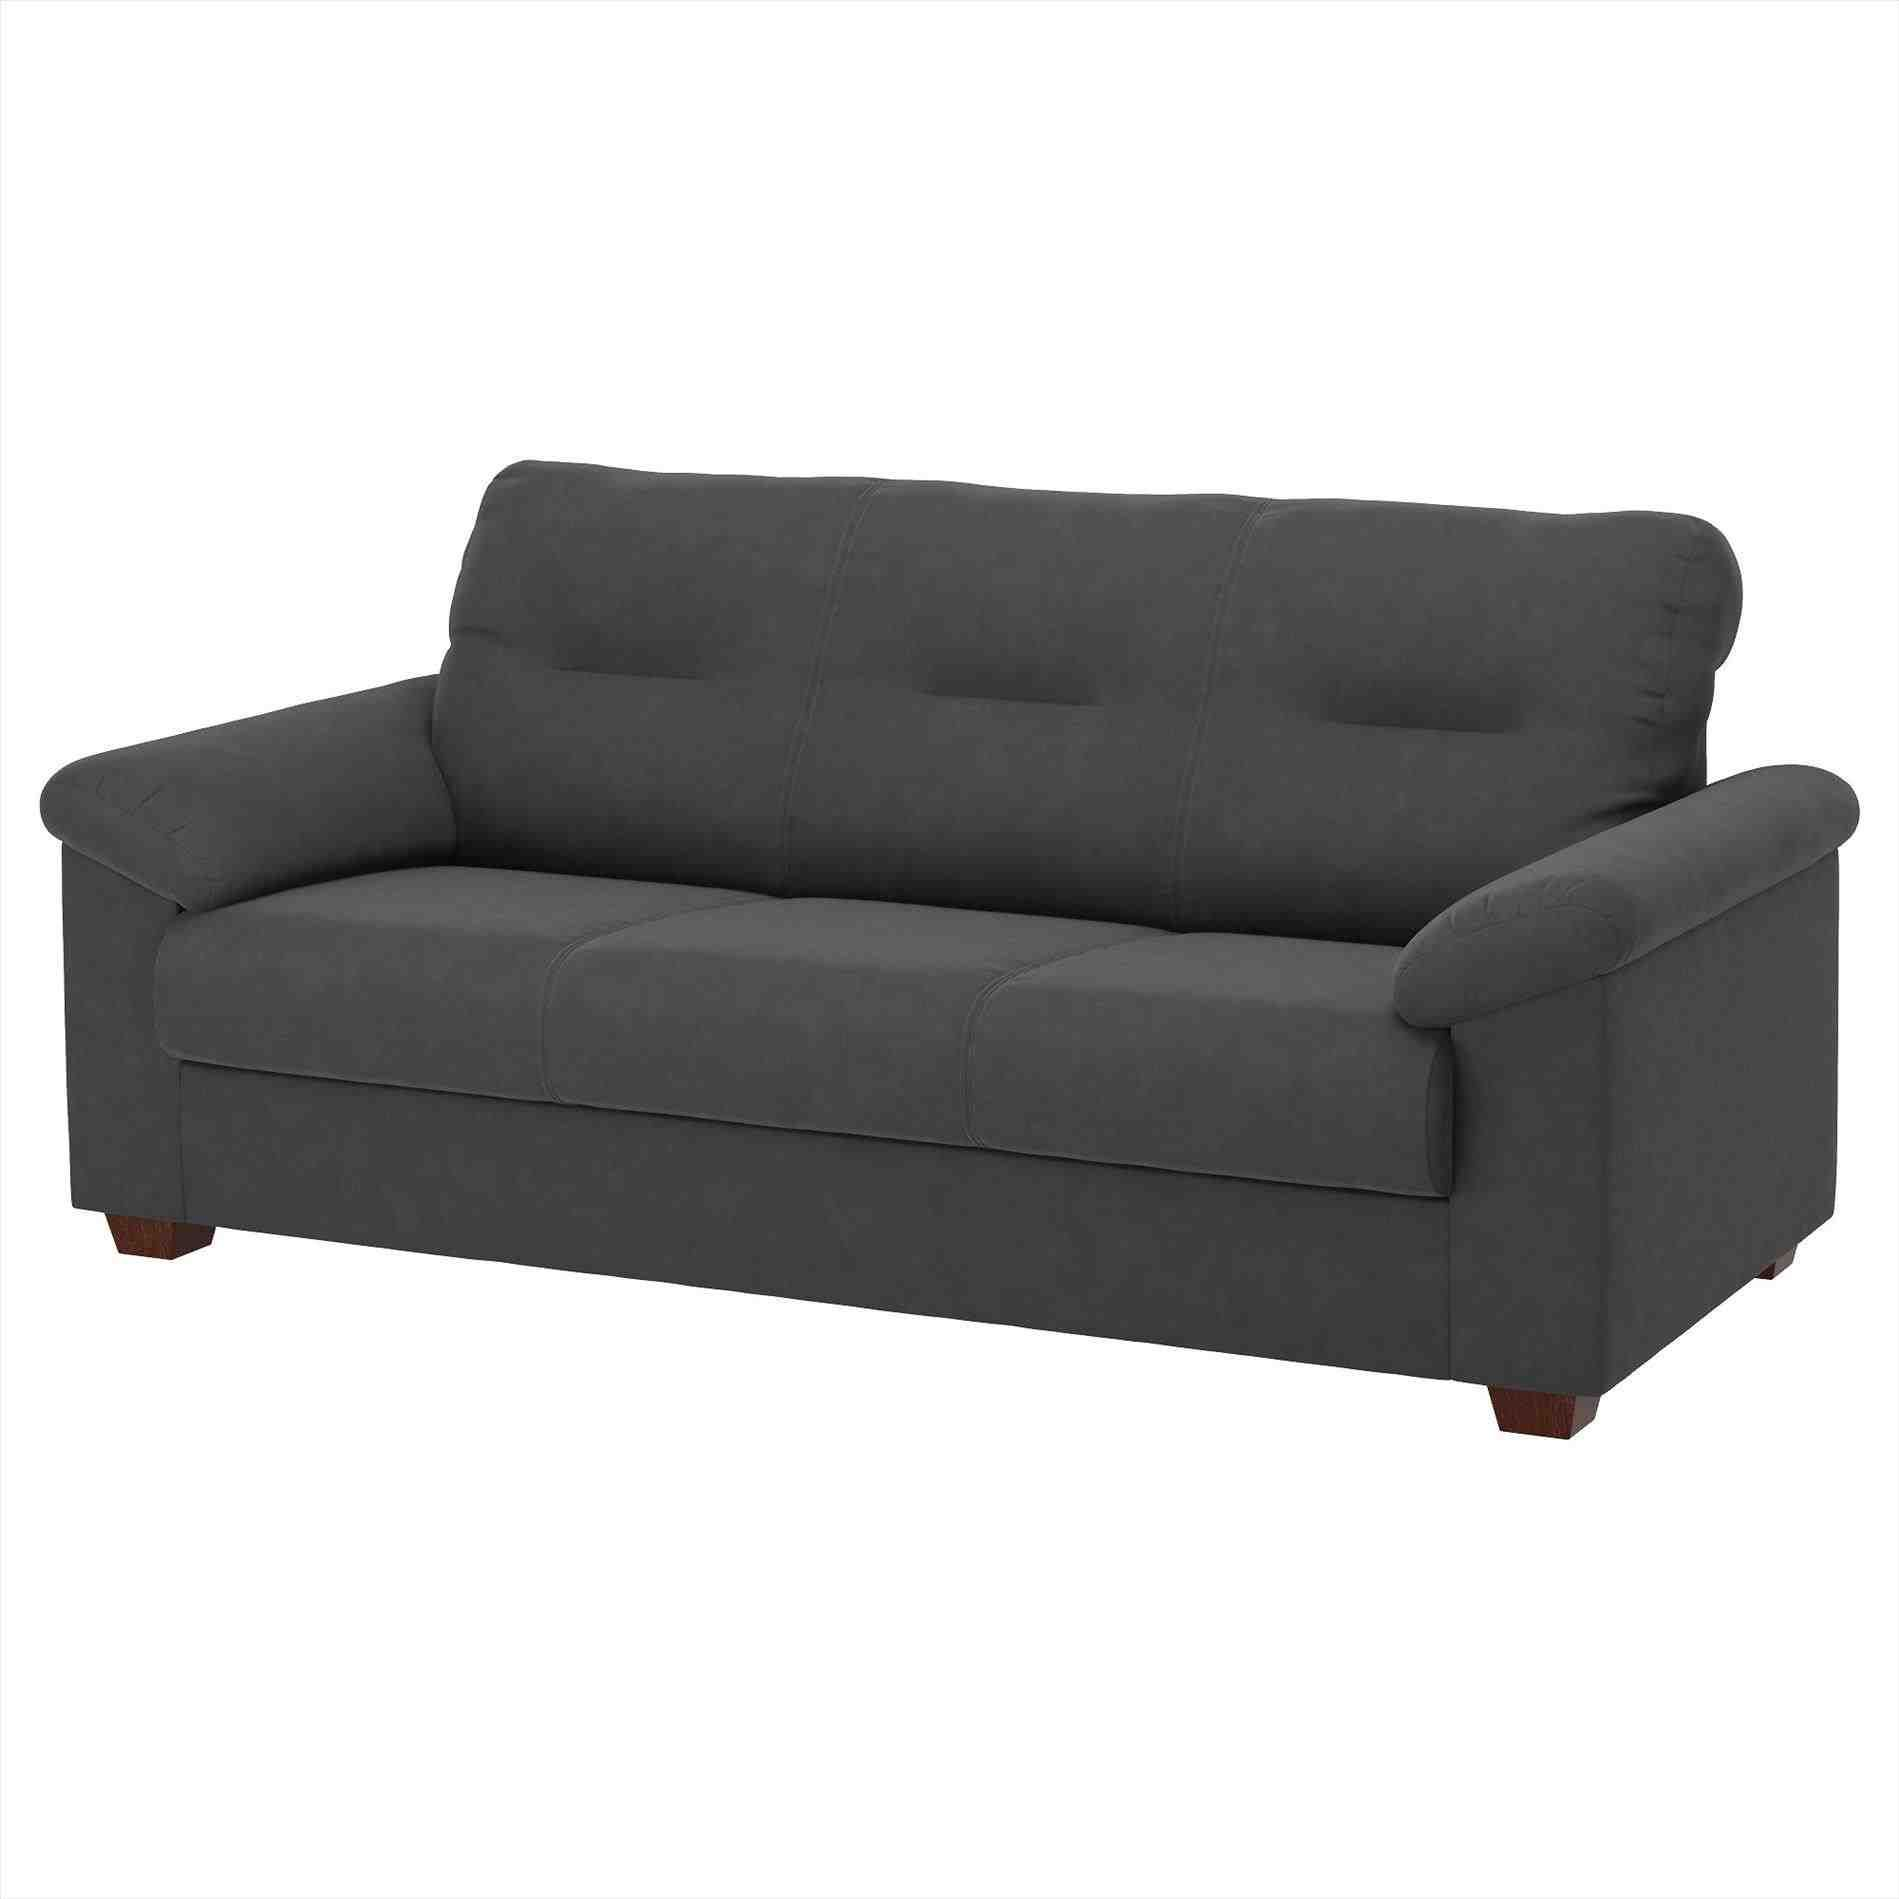 Sofa Bed For Sale Toronto Cheap Loveseats Toronto Oversizedal Sofa Deep Couches For Sale